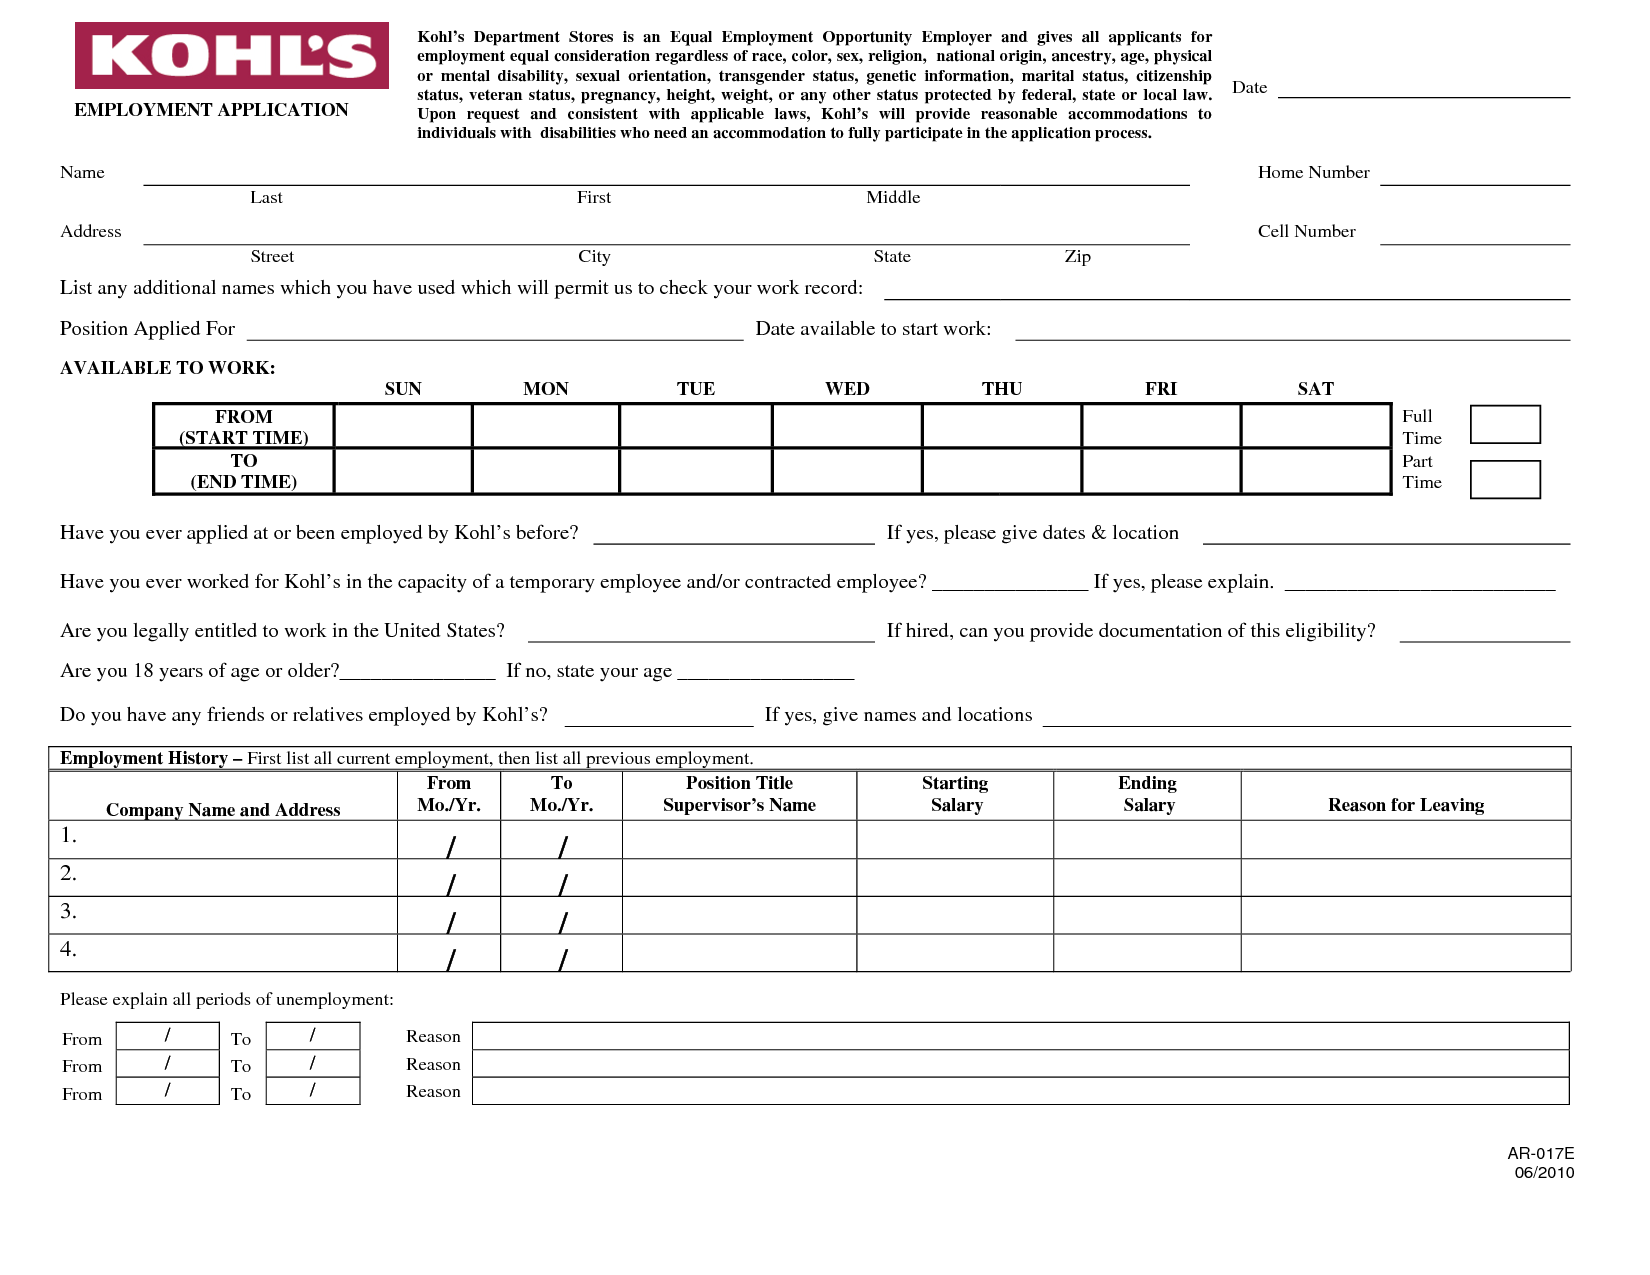 Selective image inside printable employment application